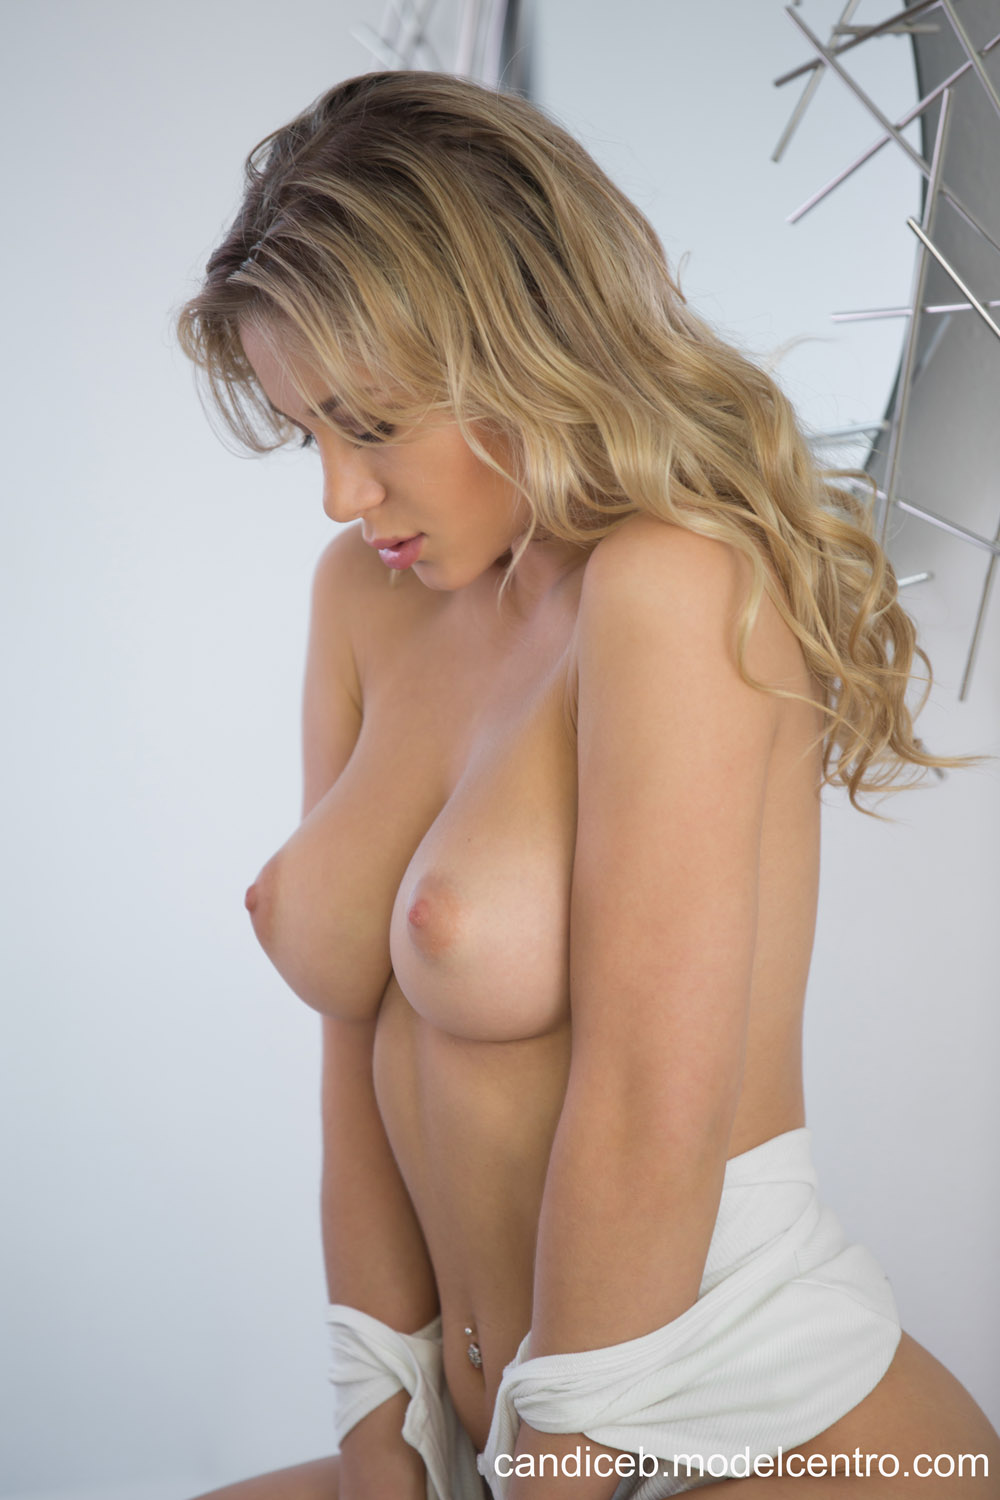 candice brielle nude pics of hot naked boobs in